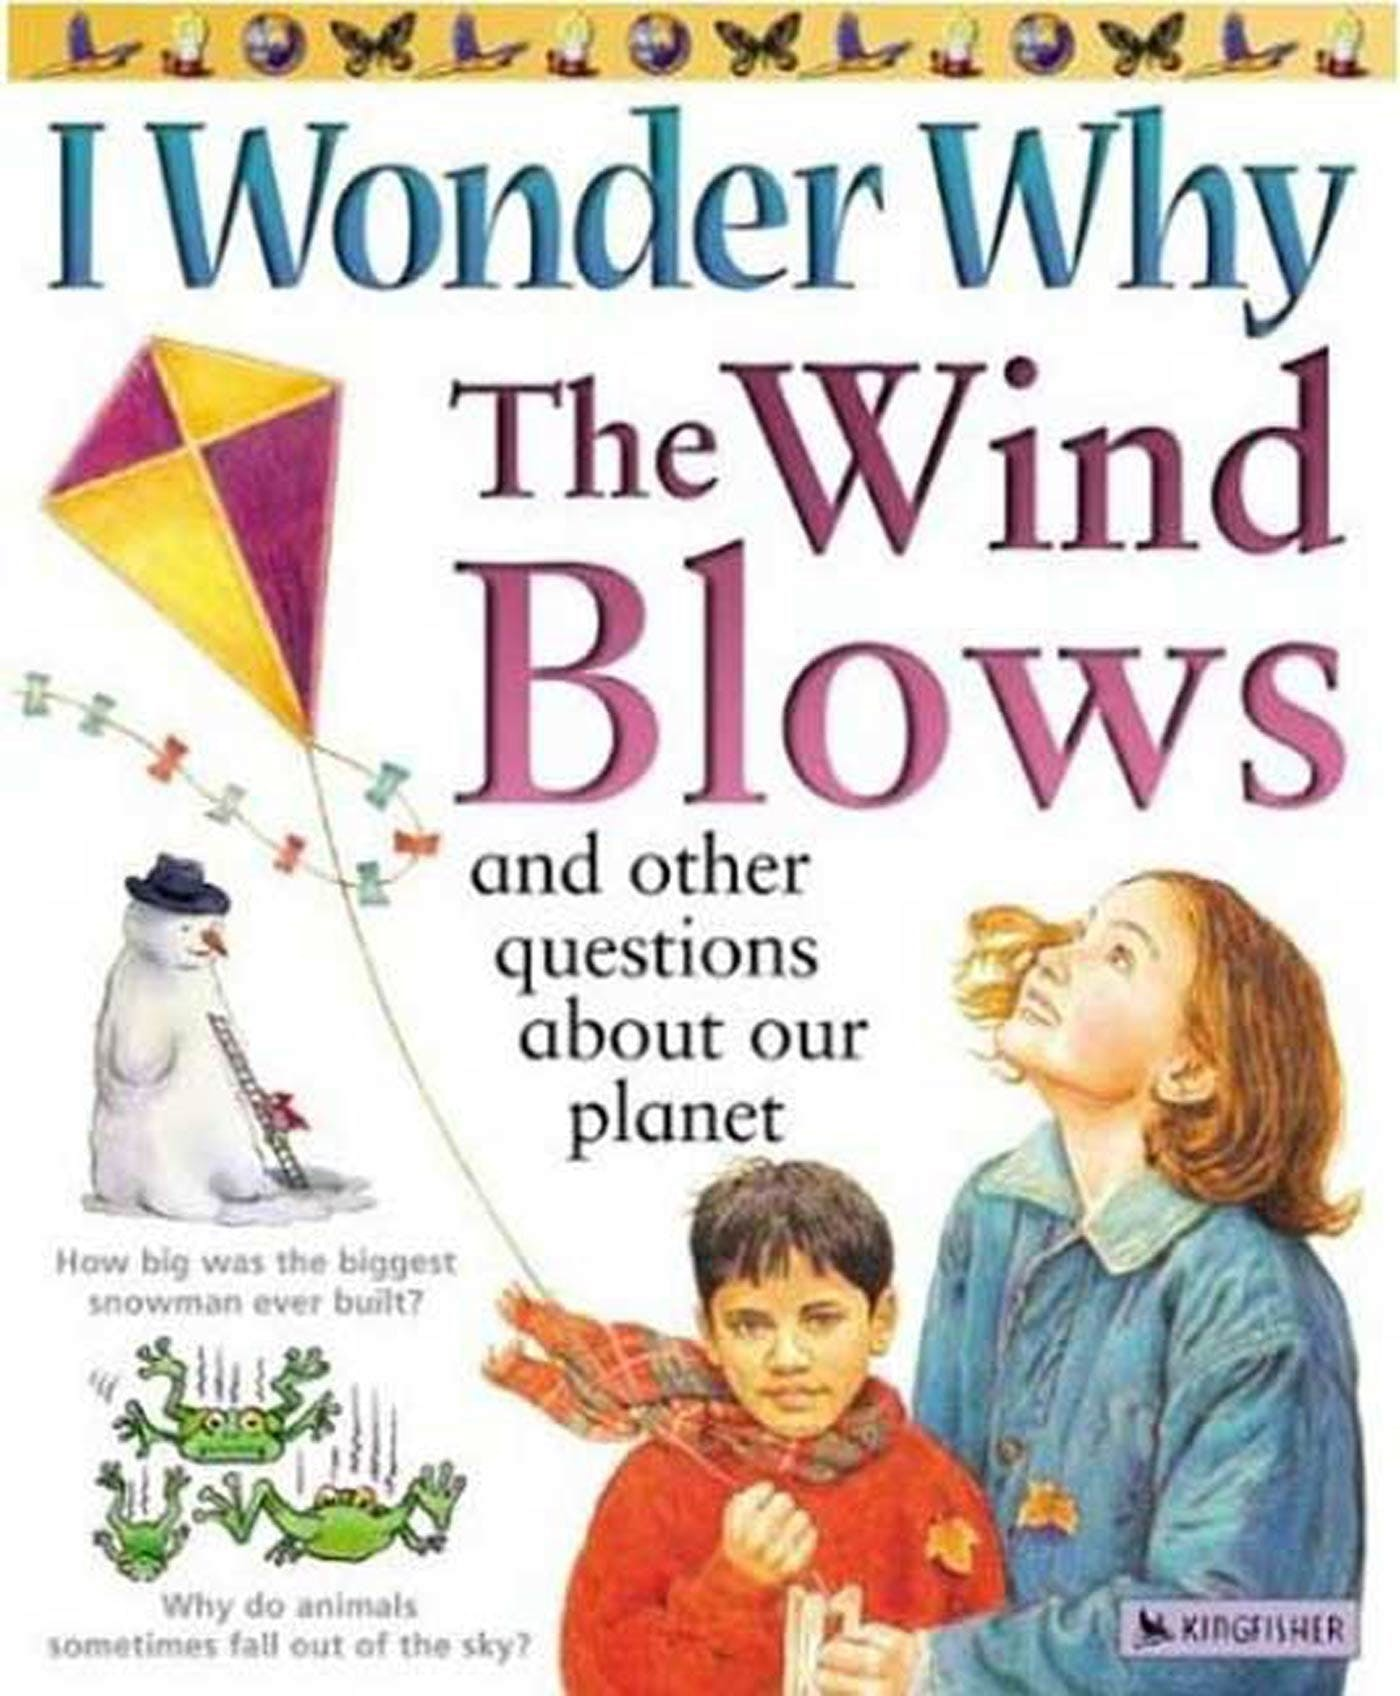 Image of I Wonder Why the Wind Blows